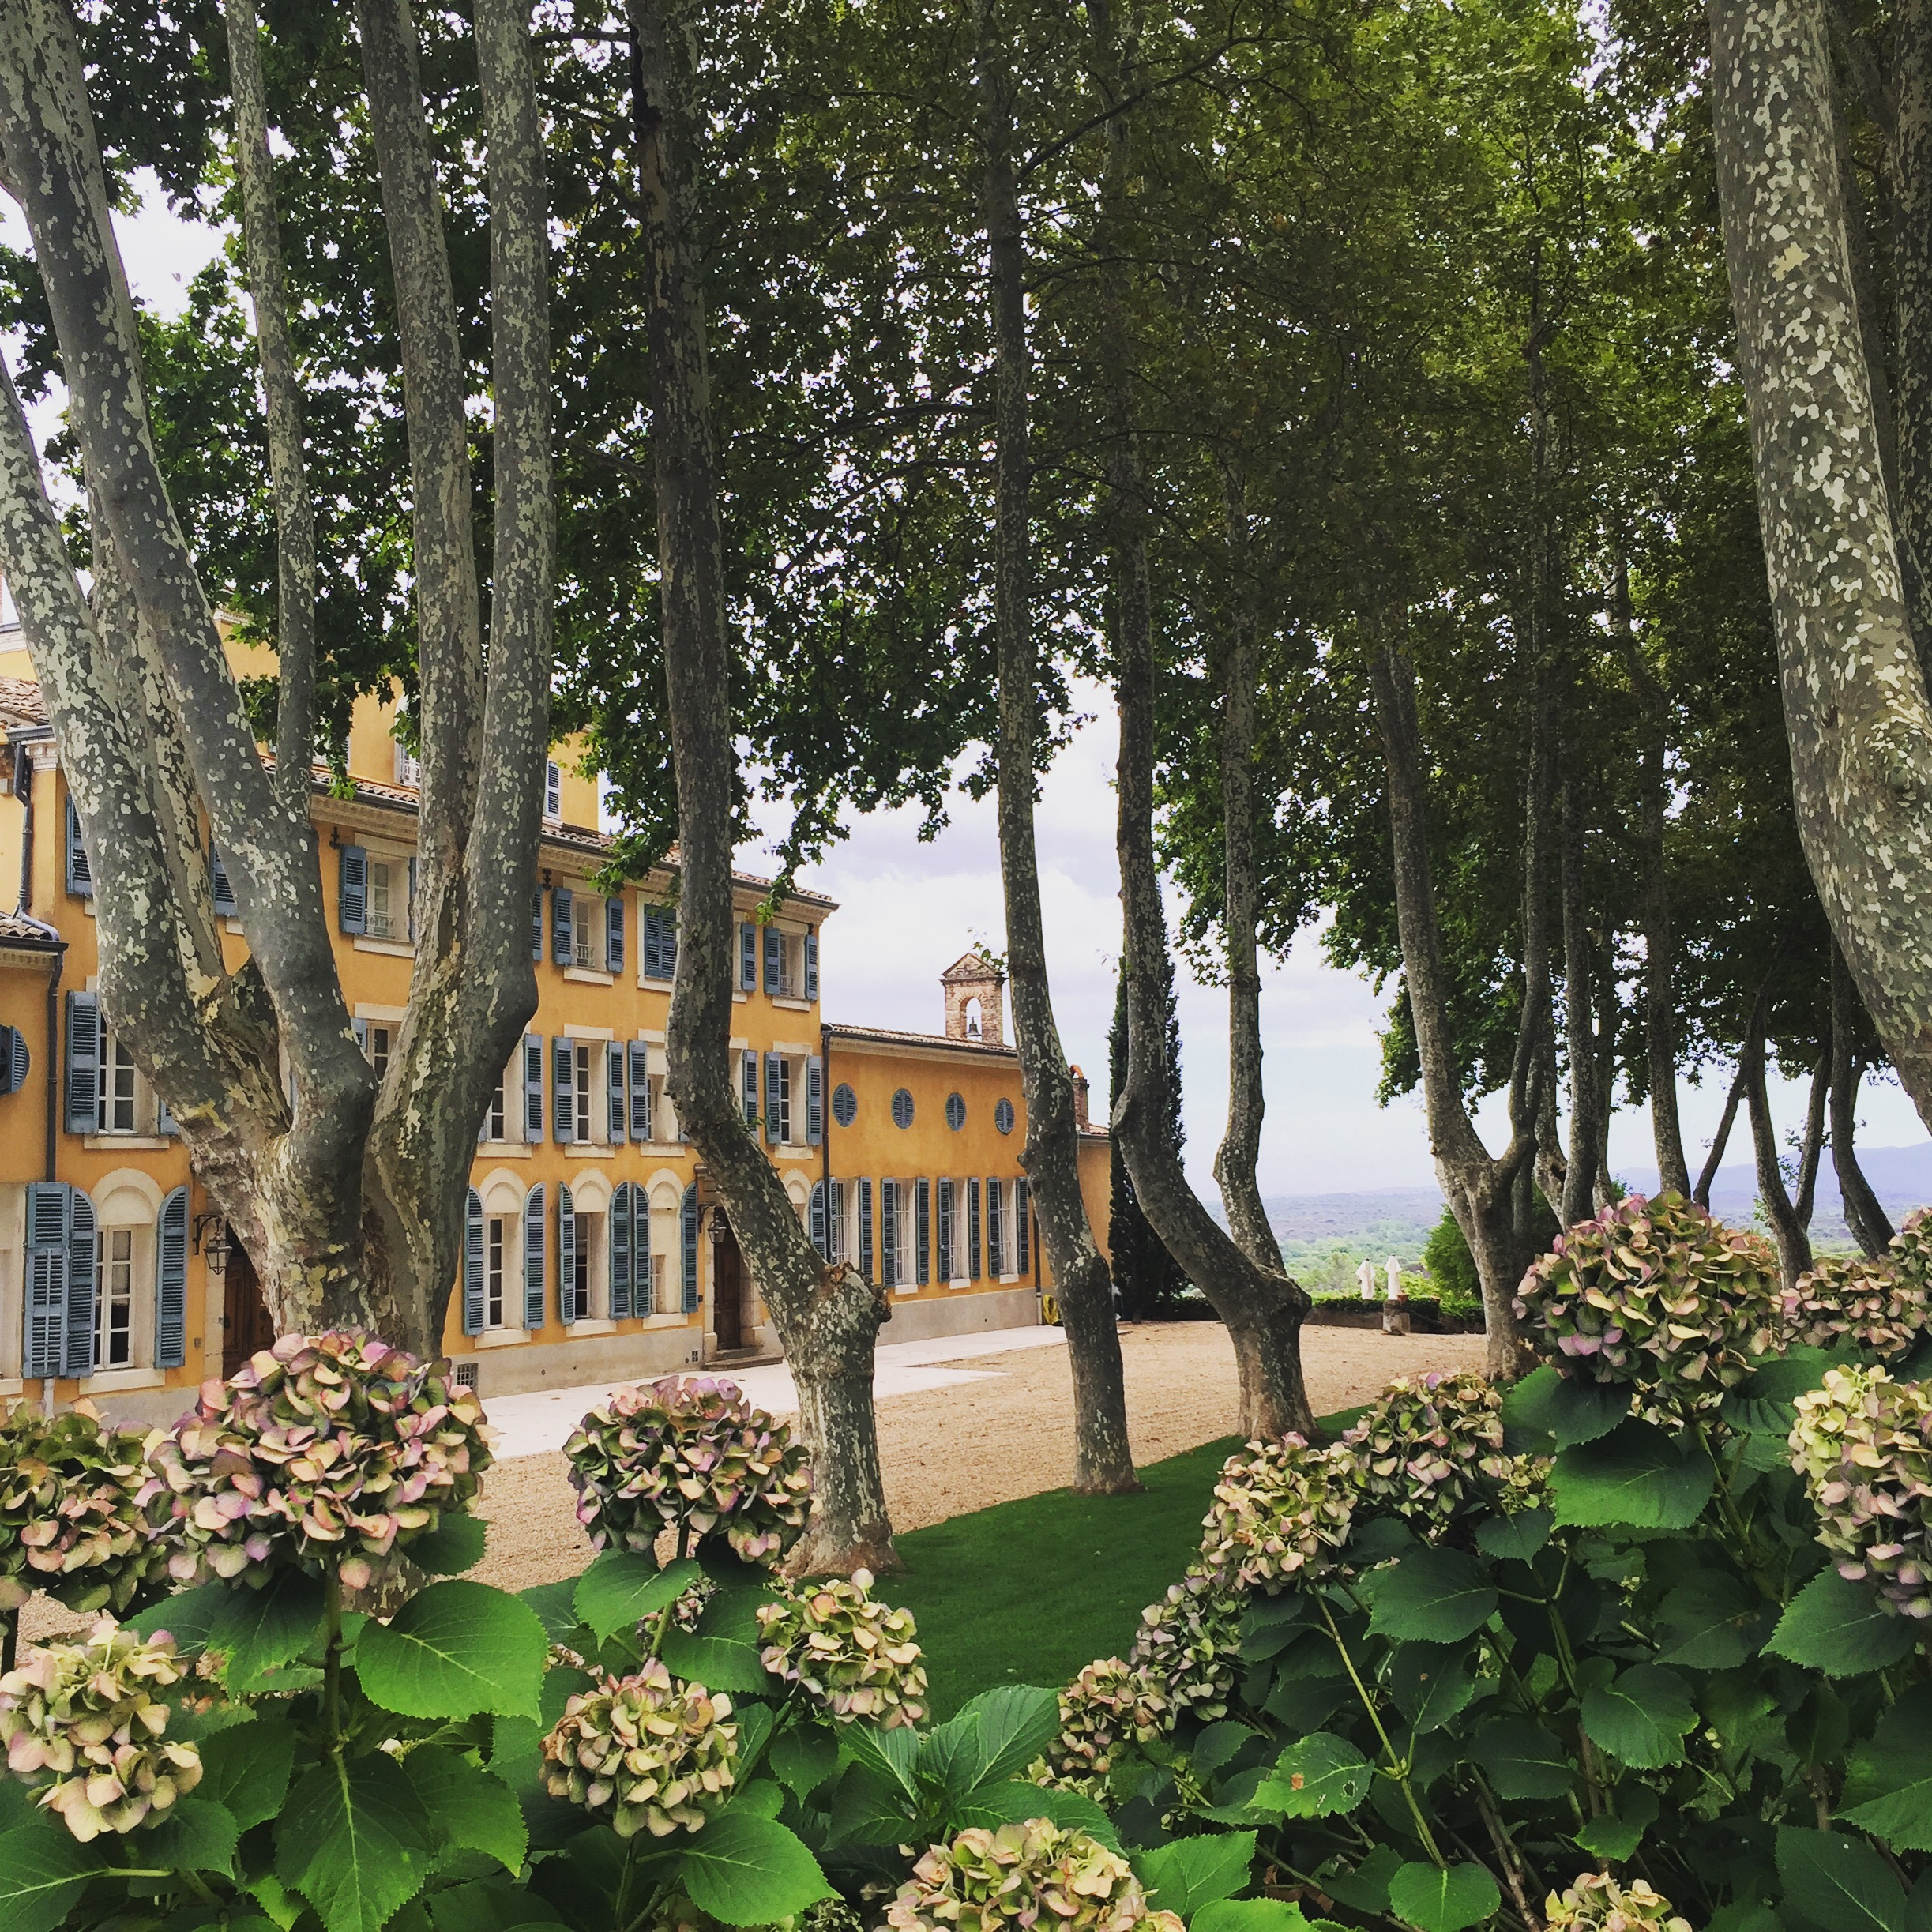 The lovely estate of Chateau D'Escalans